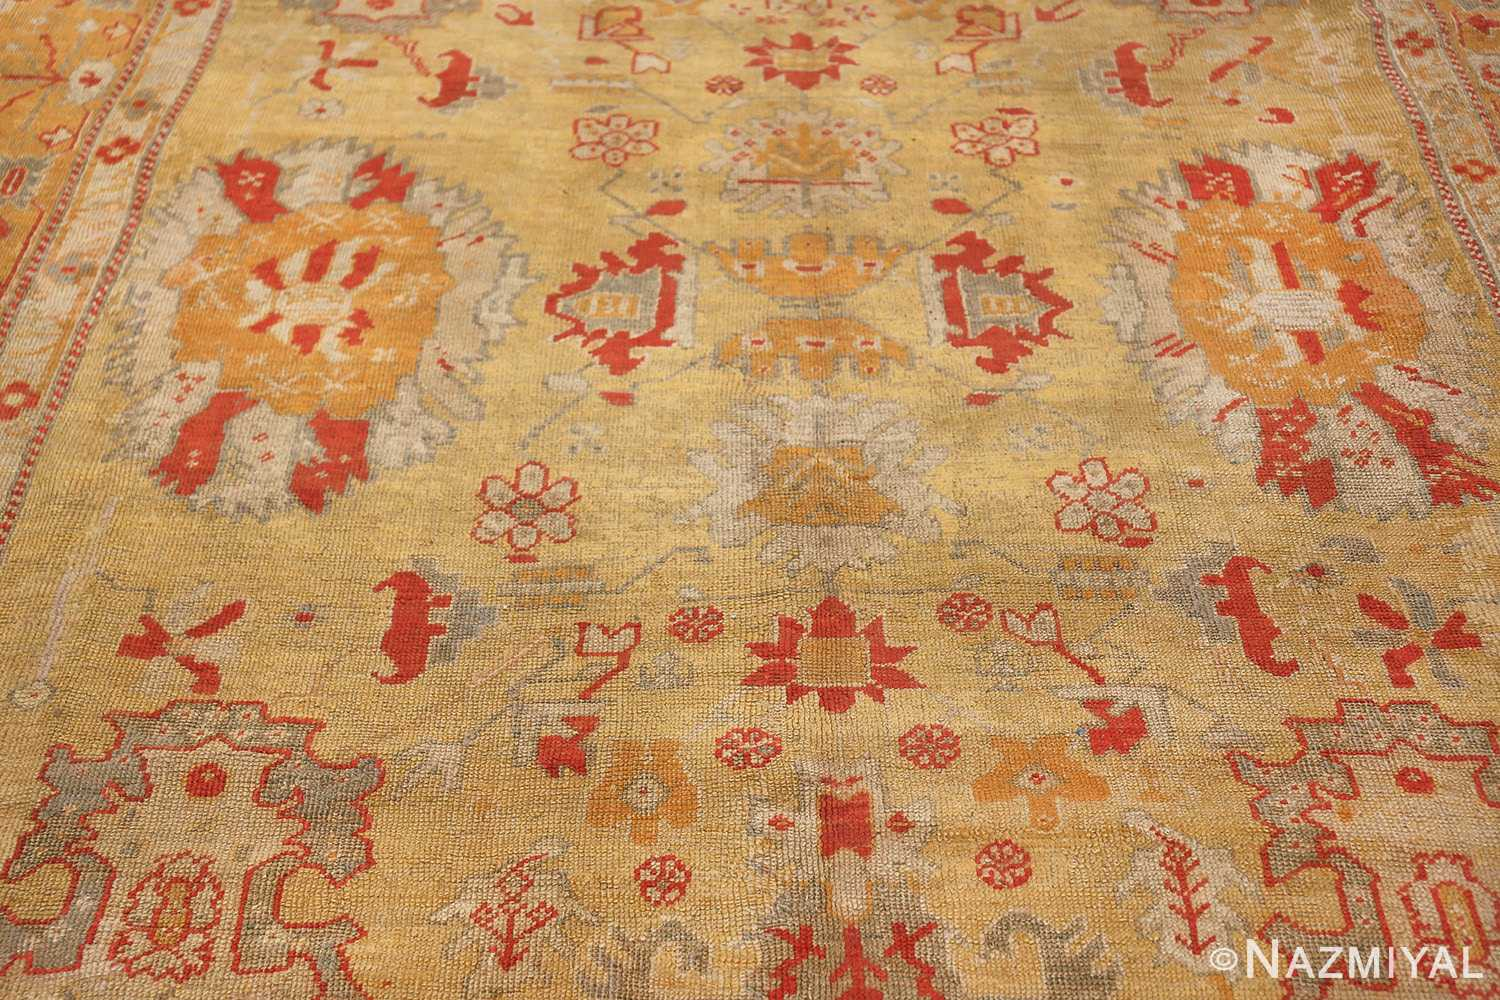 Tribal and Primitive Decorative Antique Turkish Oushak Rug 47260 Central Pattern Nazmiyal